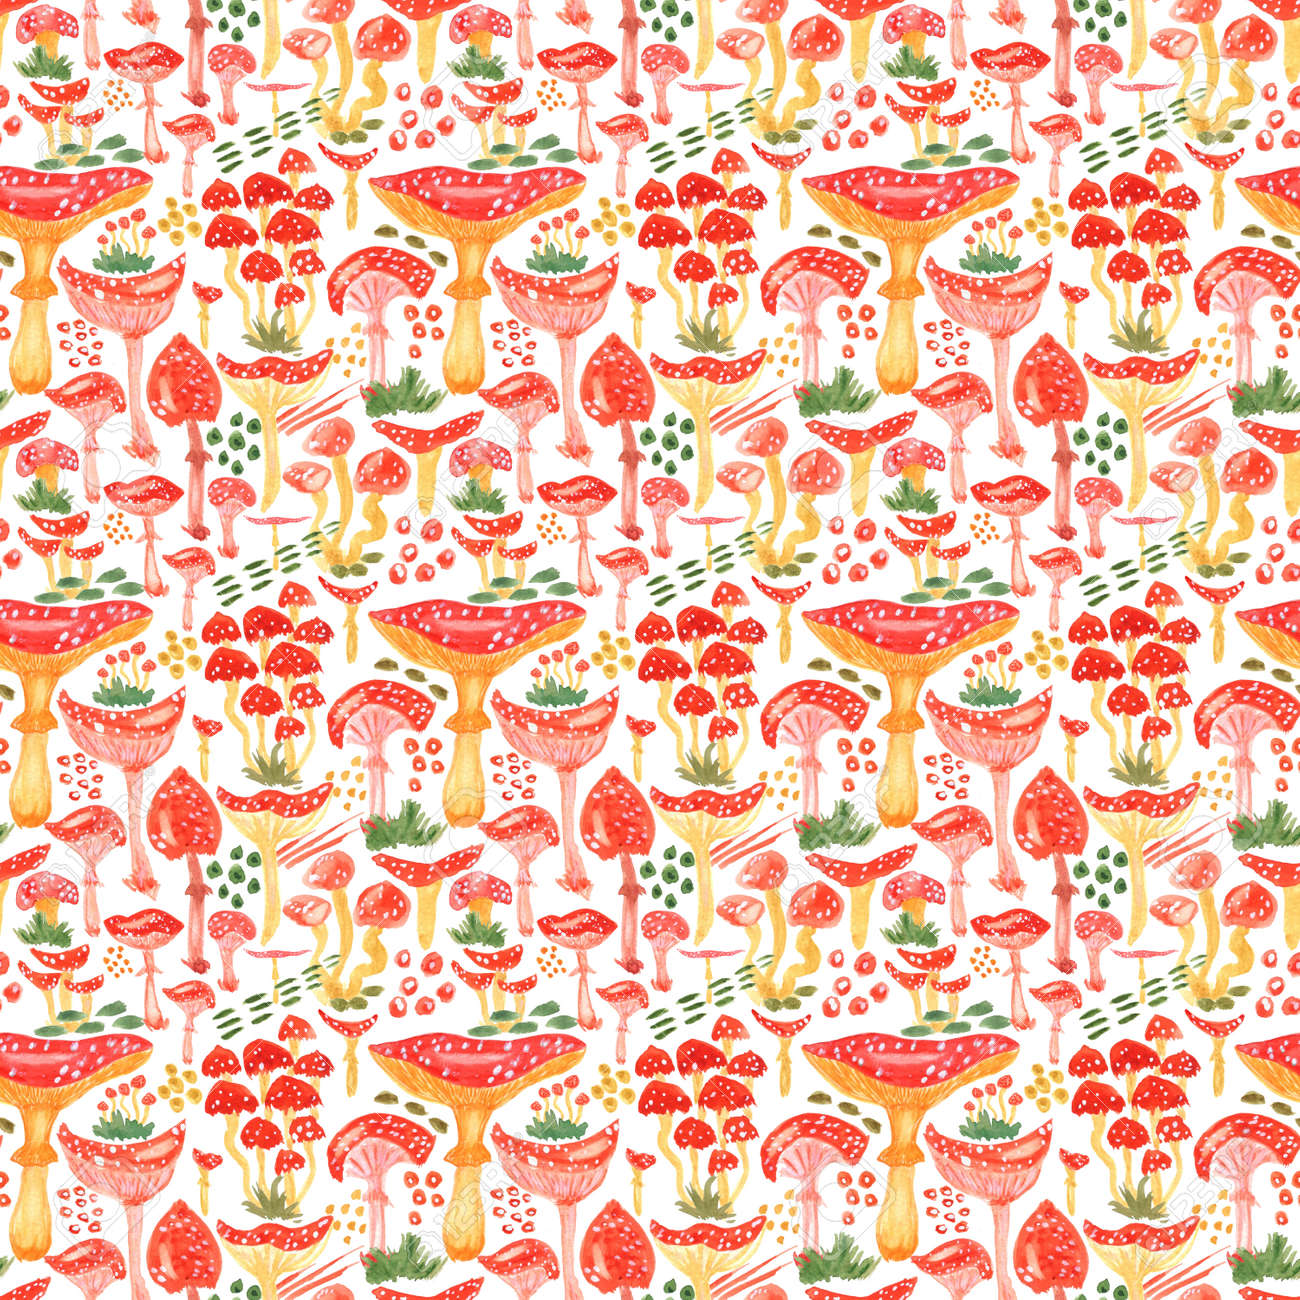 Seamless watercolor background with mushrooms. Pattern for creating fabrics, wallpapers, gift wrapping paper, invitations, textile, scrapbooking. Isolated on white background. - 164949485